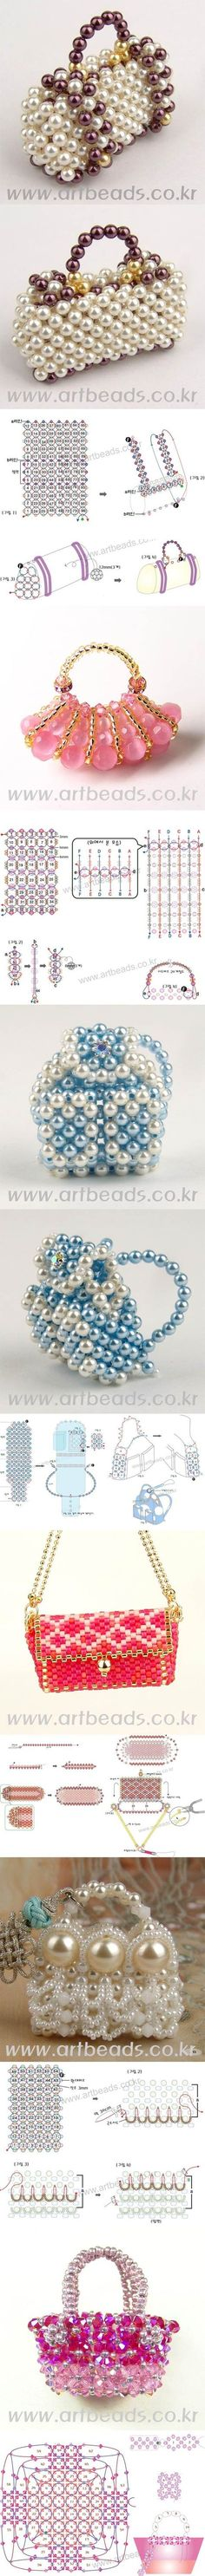 DIY Cute Miniature Beaded Handbags | iCreativeIdeas.com LIKE Us on Facebook ==> https://www.facebook.com/icreativeideas